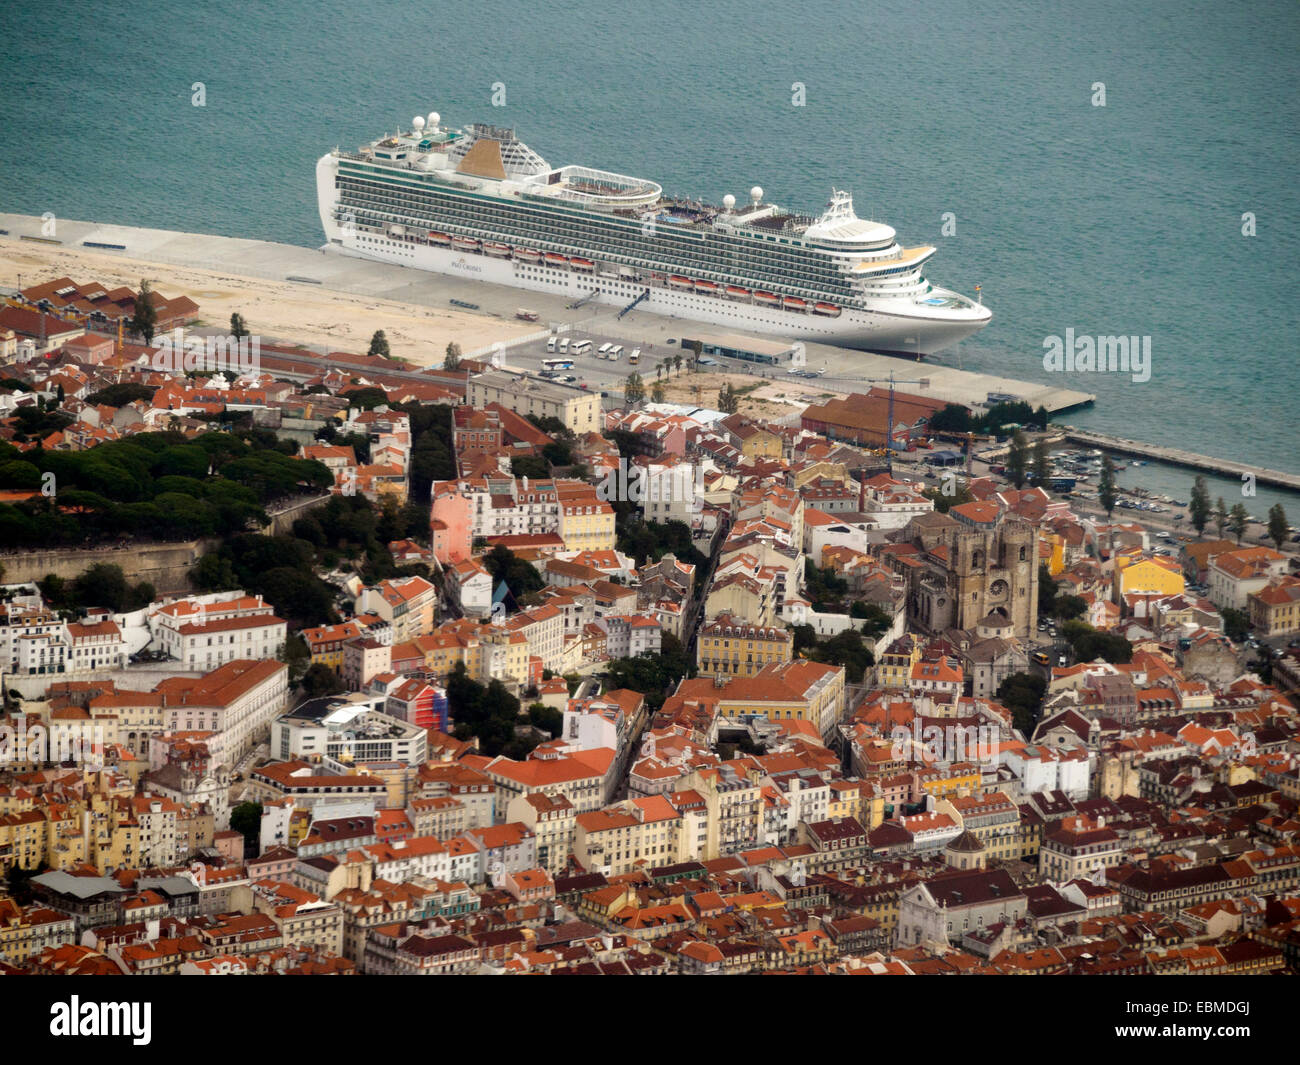 Aerial View Of The PO Azura Cruise Ship Docked In The Port Of - Lisbon cruise ship port